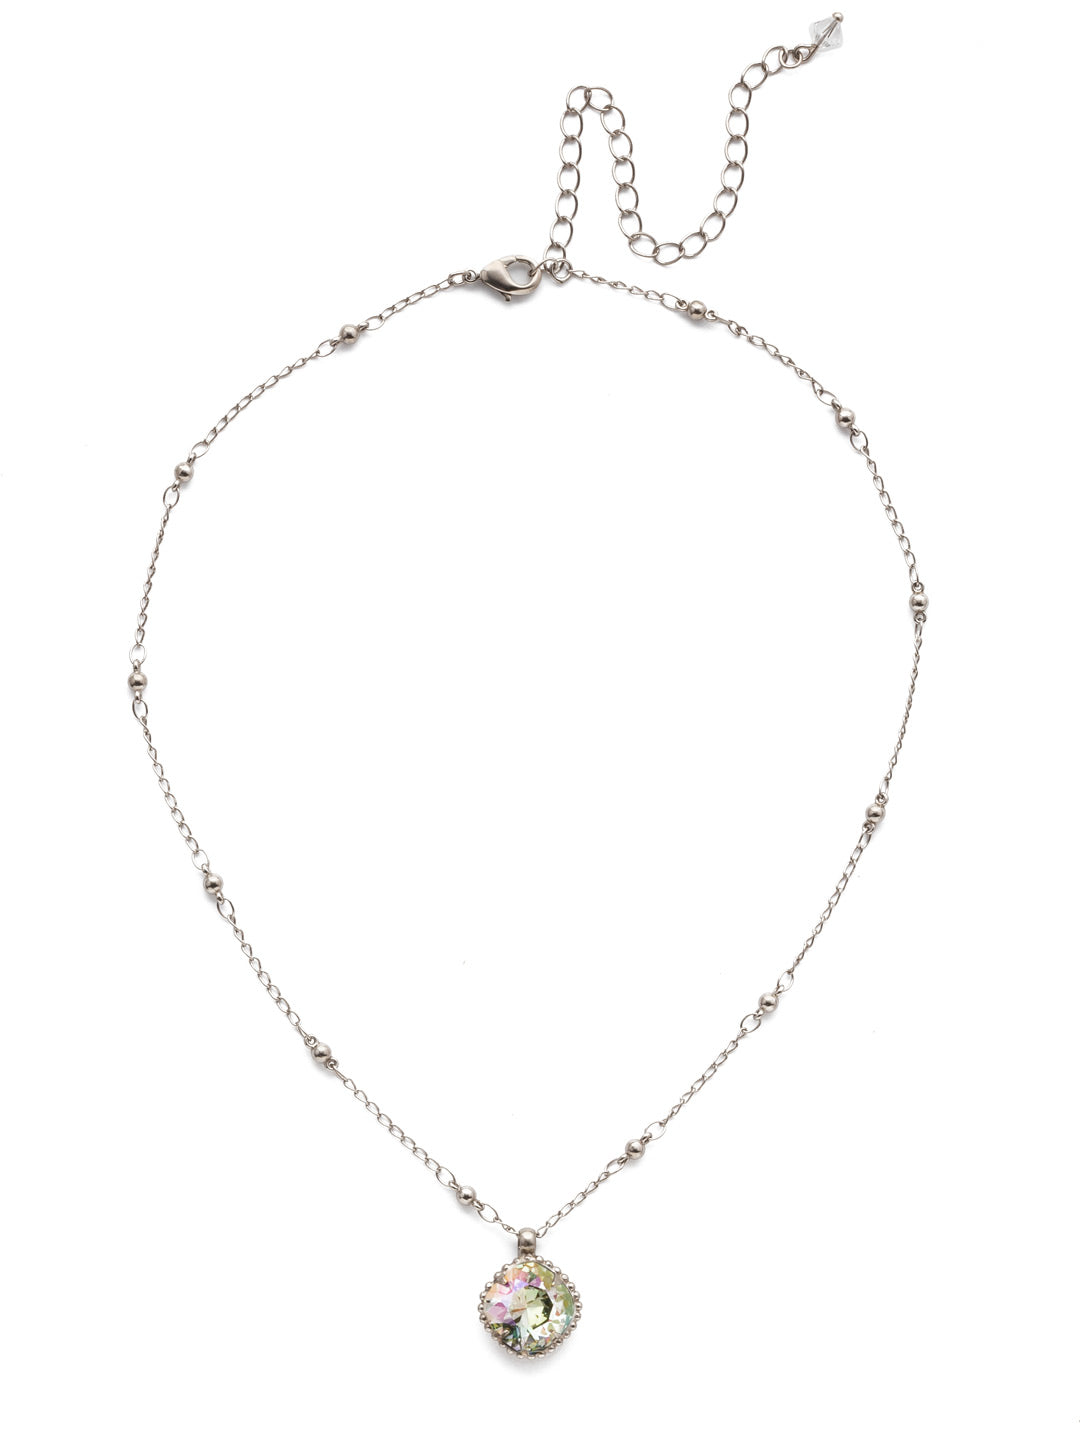 Cushion-Cut Pendant Necklace - NDS50ASCRE